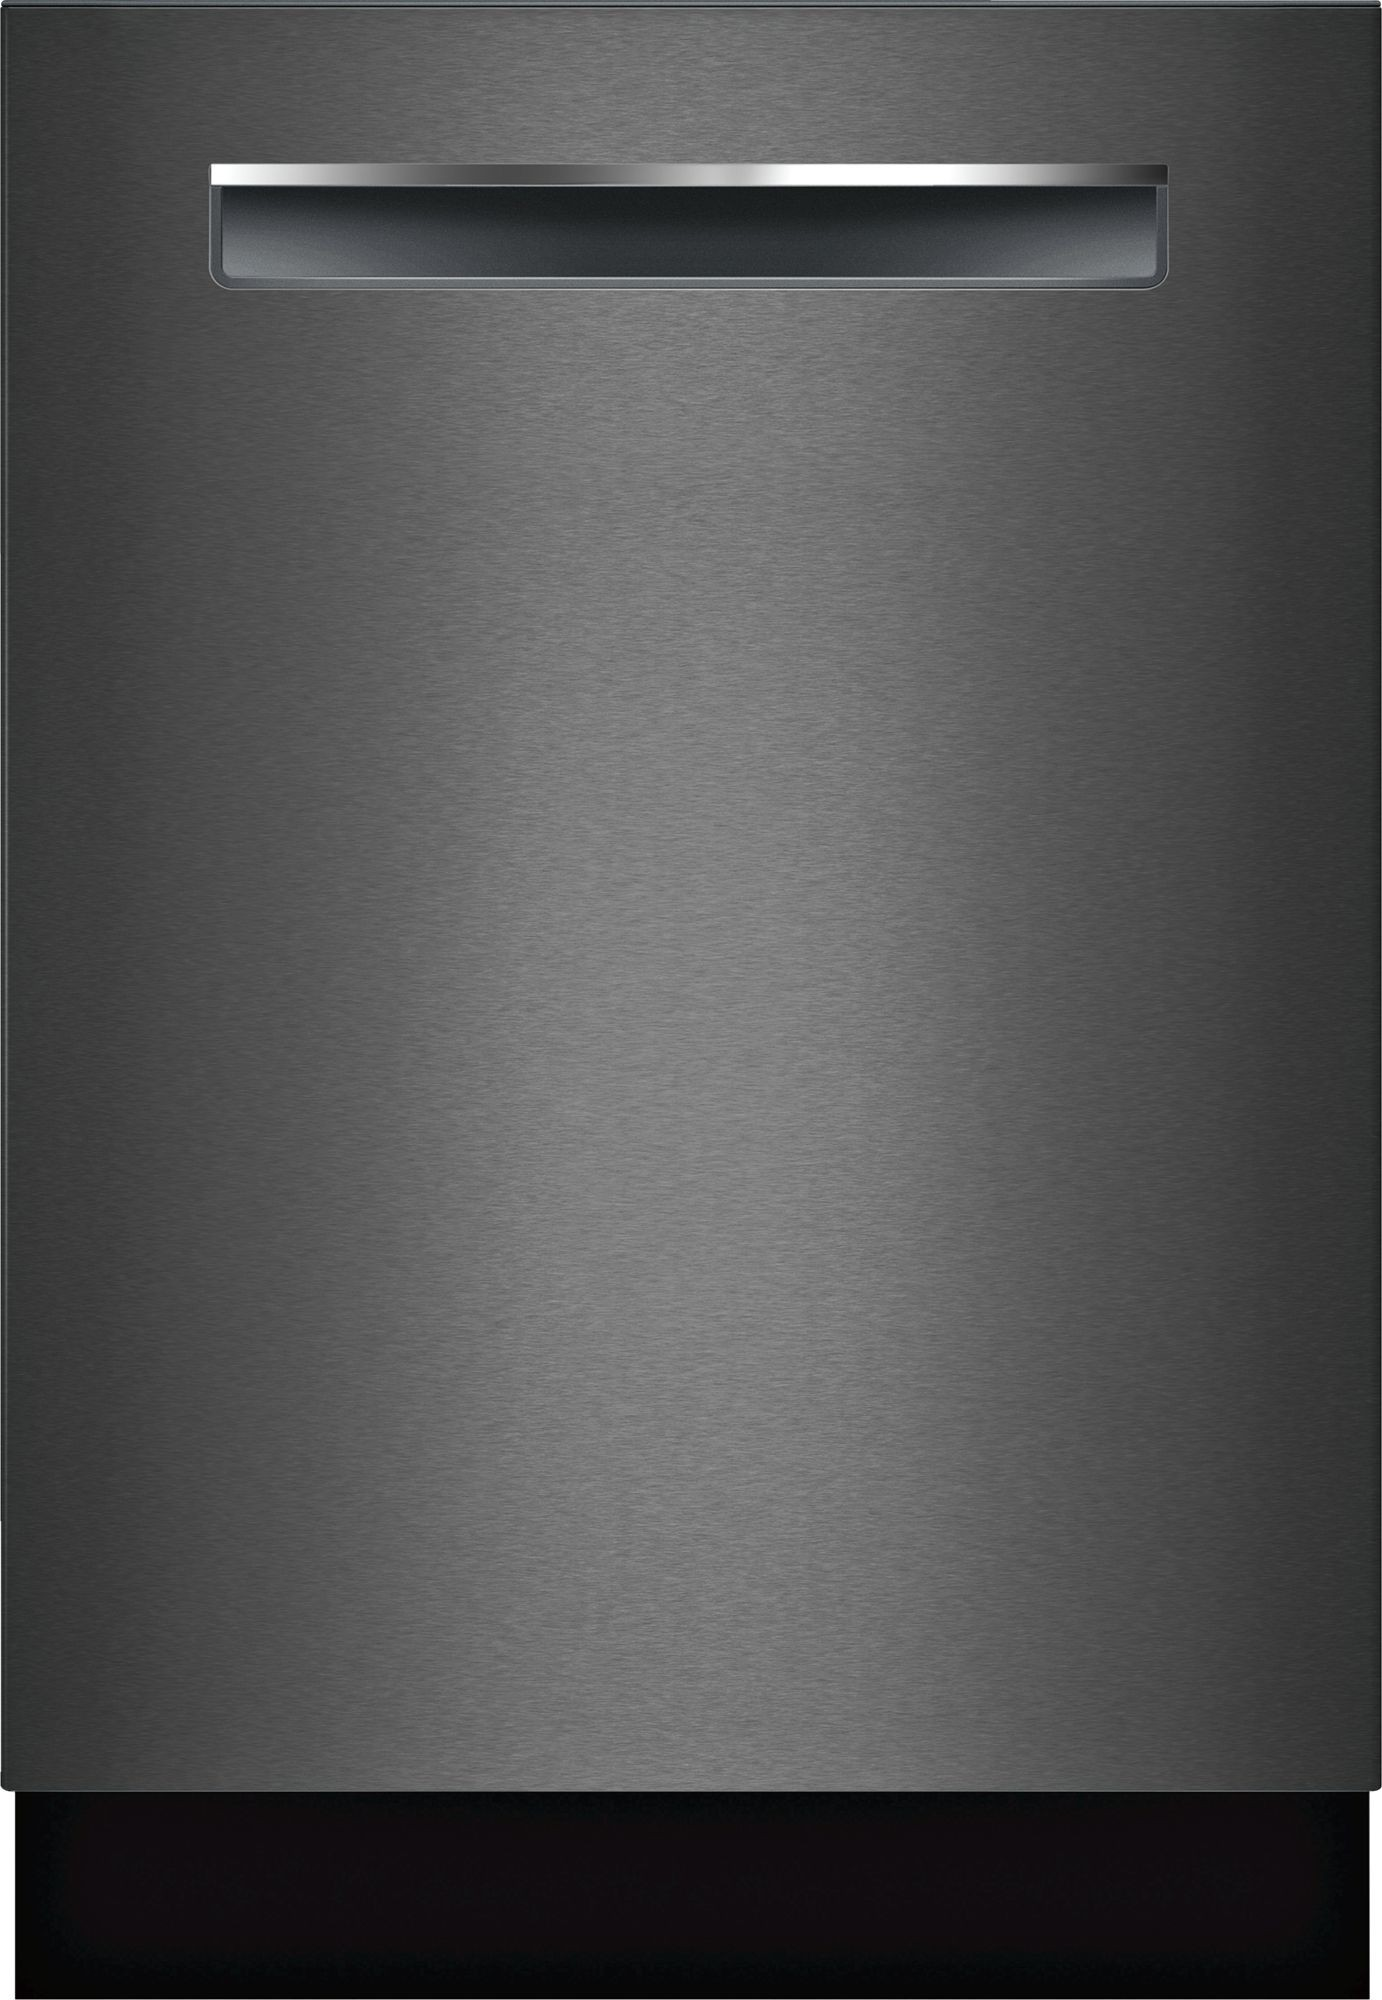 Bosch Shpm78w54n 24 Inch Fully Integrated Dishwasher With 16 Place Setting Capacity 6 Wash Cycles Silence Rating Of 42 Dba Flexible 3rd Rack Rackmatic Eas Integrated Dishwasher Steel Tub Black Stainless Steel